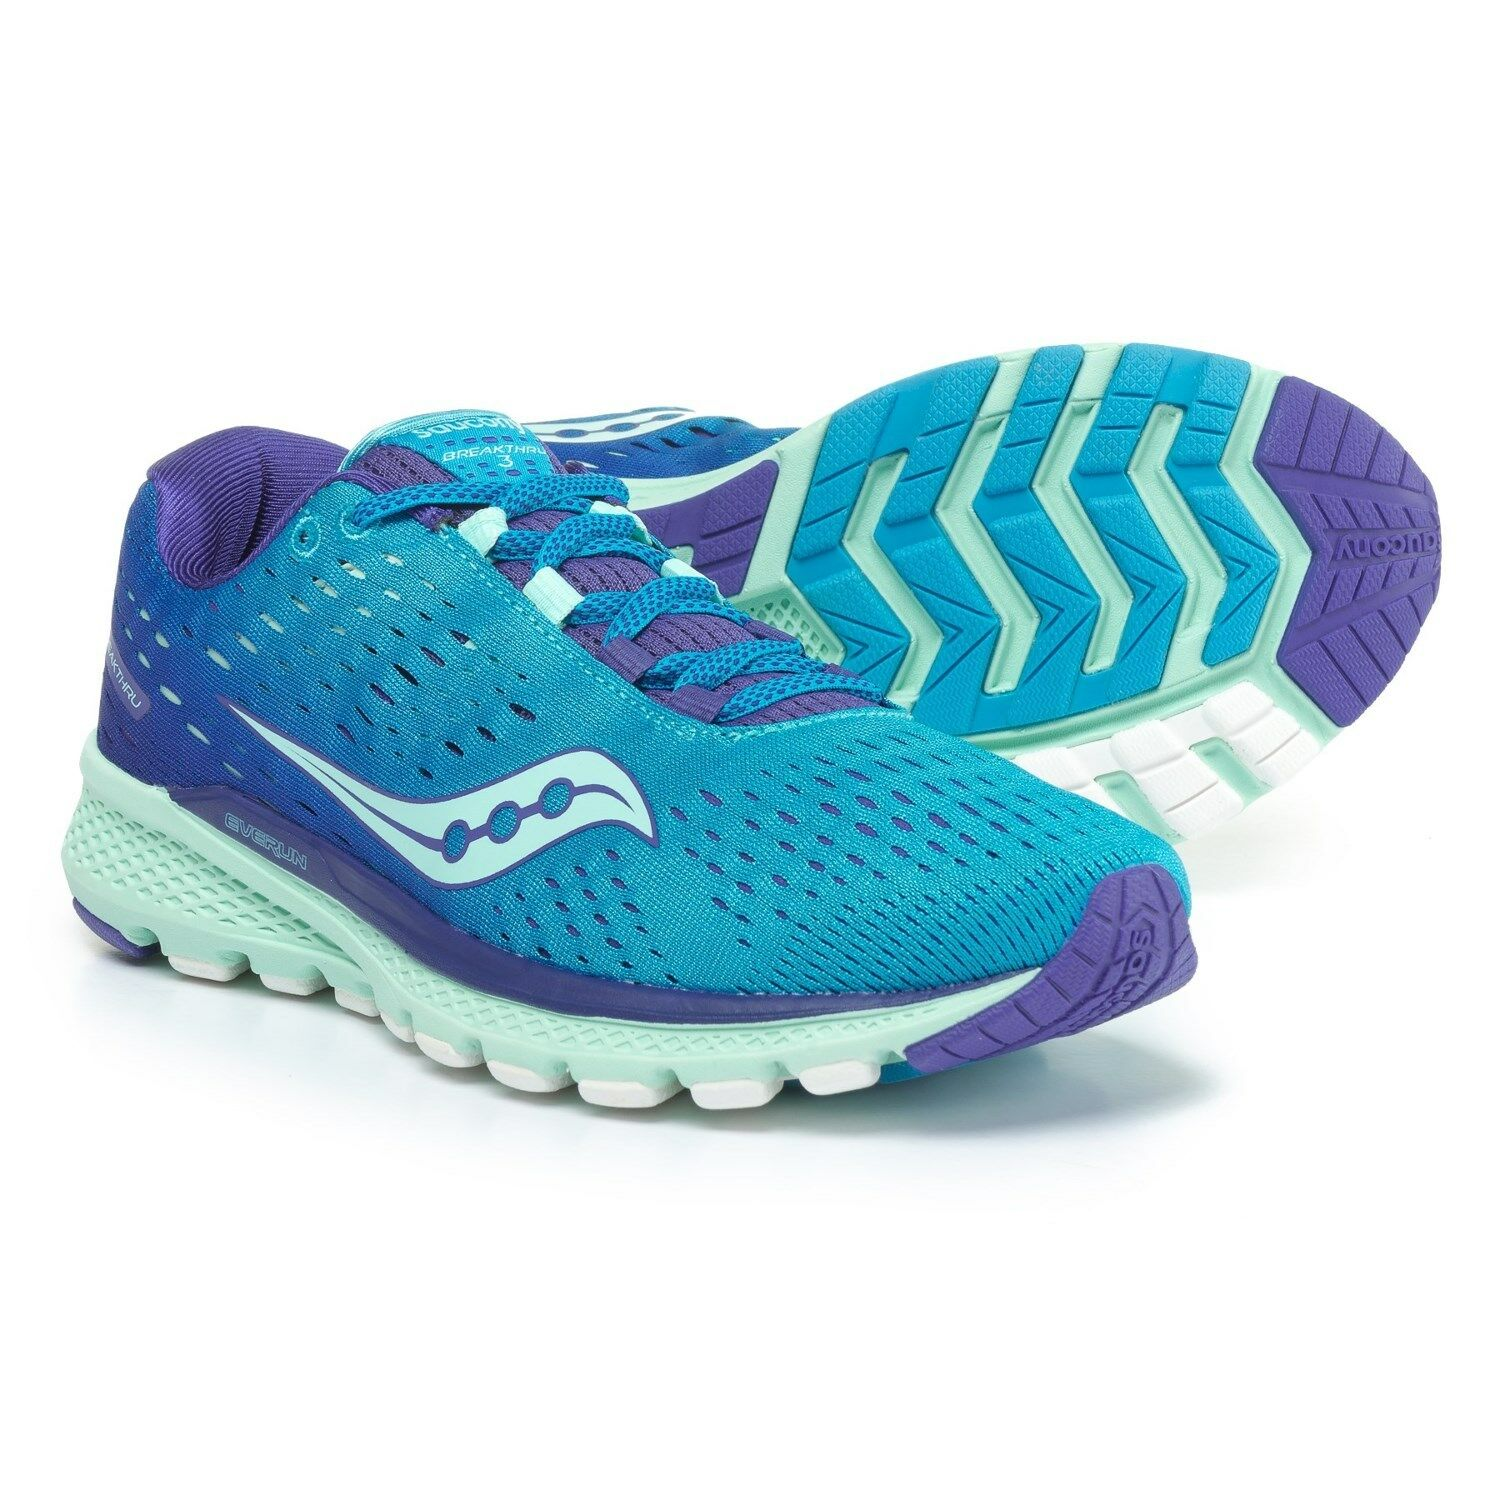 NIB WOMENS SAUCONY BREAKTHRU 3 blueE MINT S10358-1 RUNNING SHOES SIZE 6.5M K12